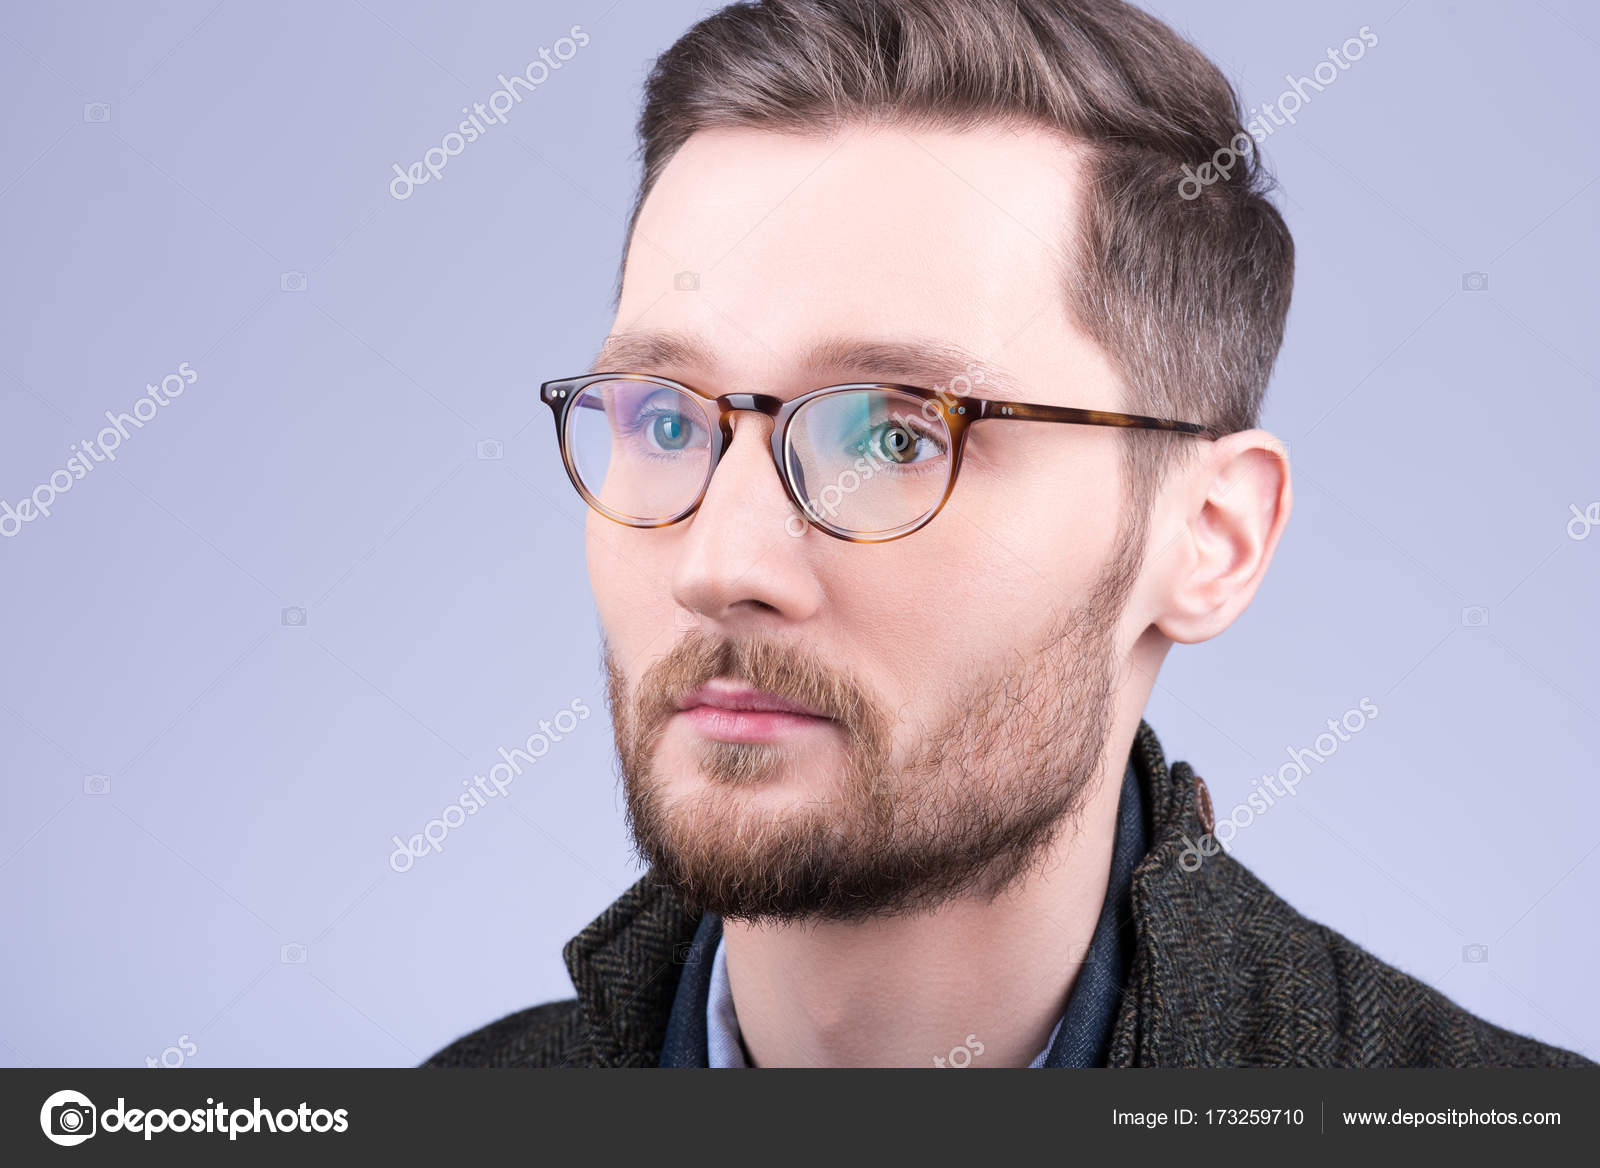 d1296c8457d6 Stylish men's glasses. Closeup portrait of young man with beard and  mustache — Stock Photo